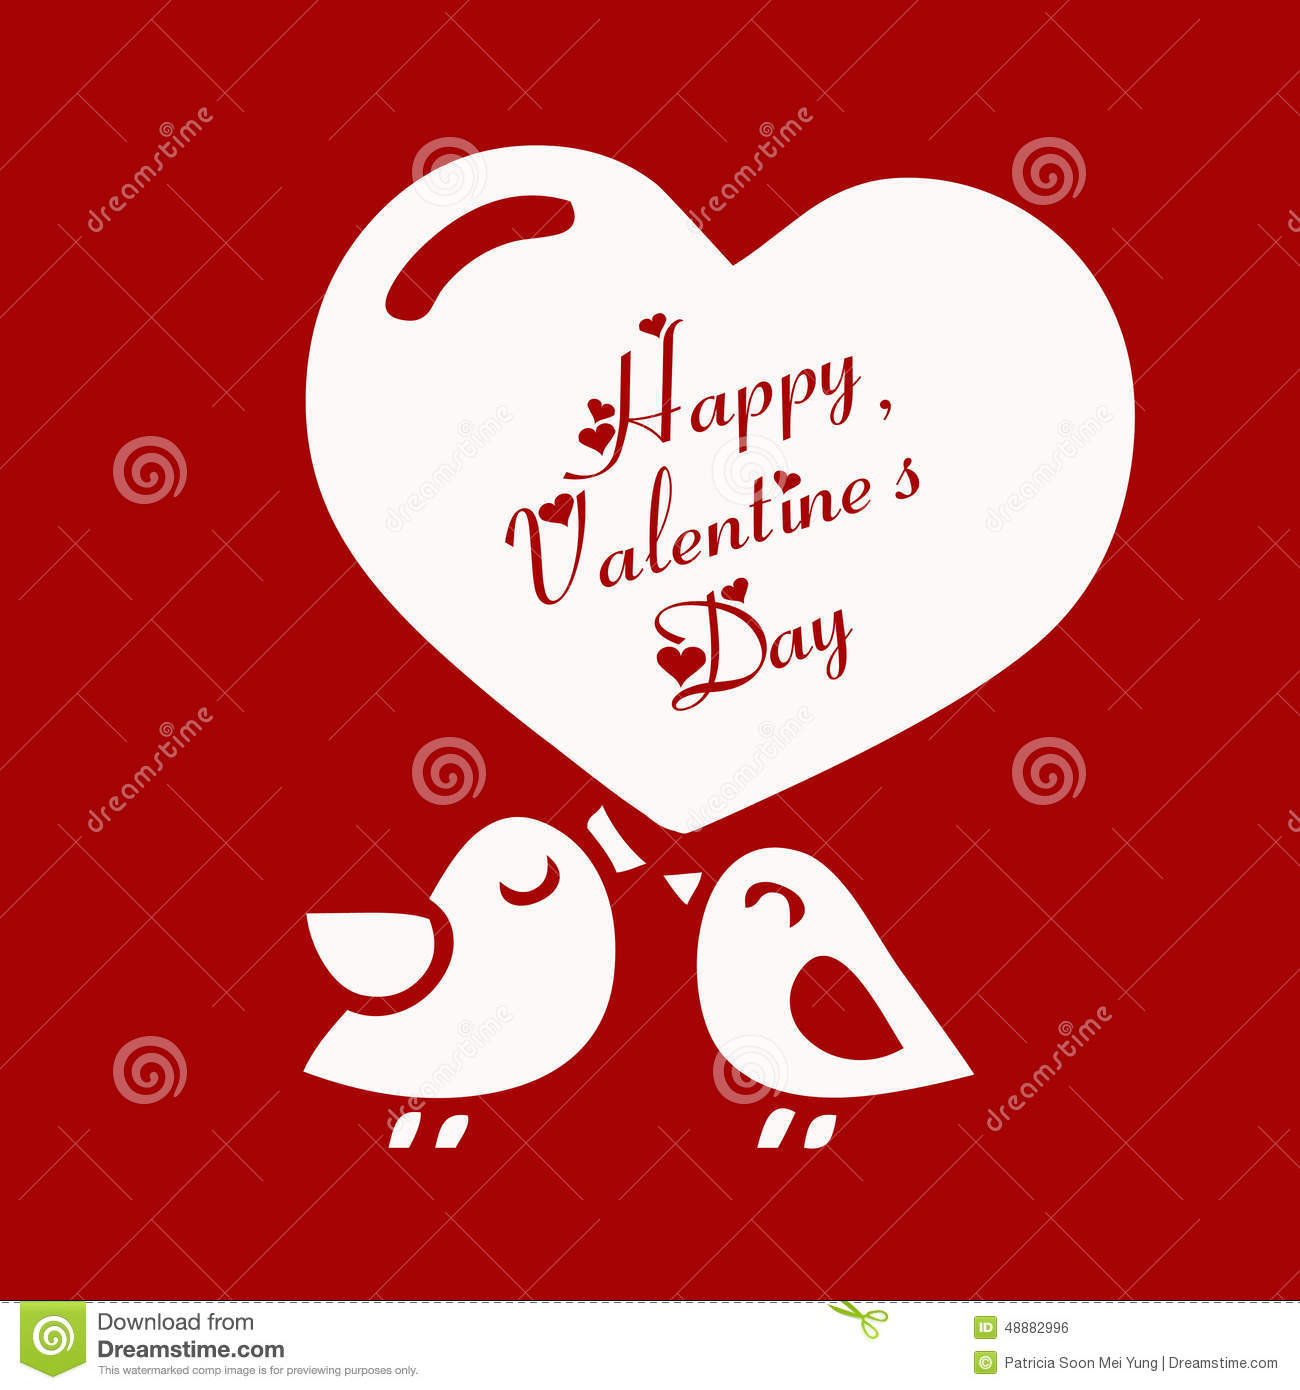 Valentines Day Card With Cute Love Birds Vector Image – Valentines Day Love Cards